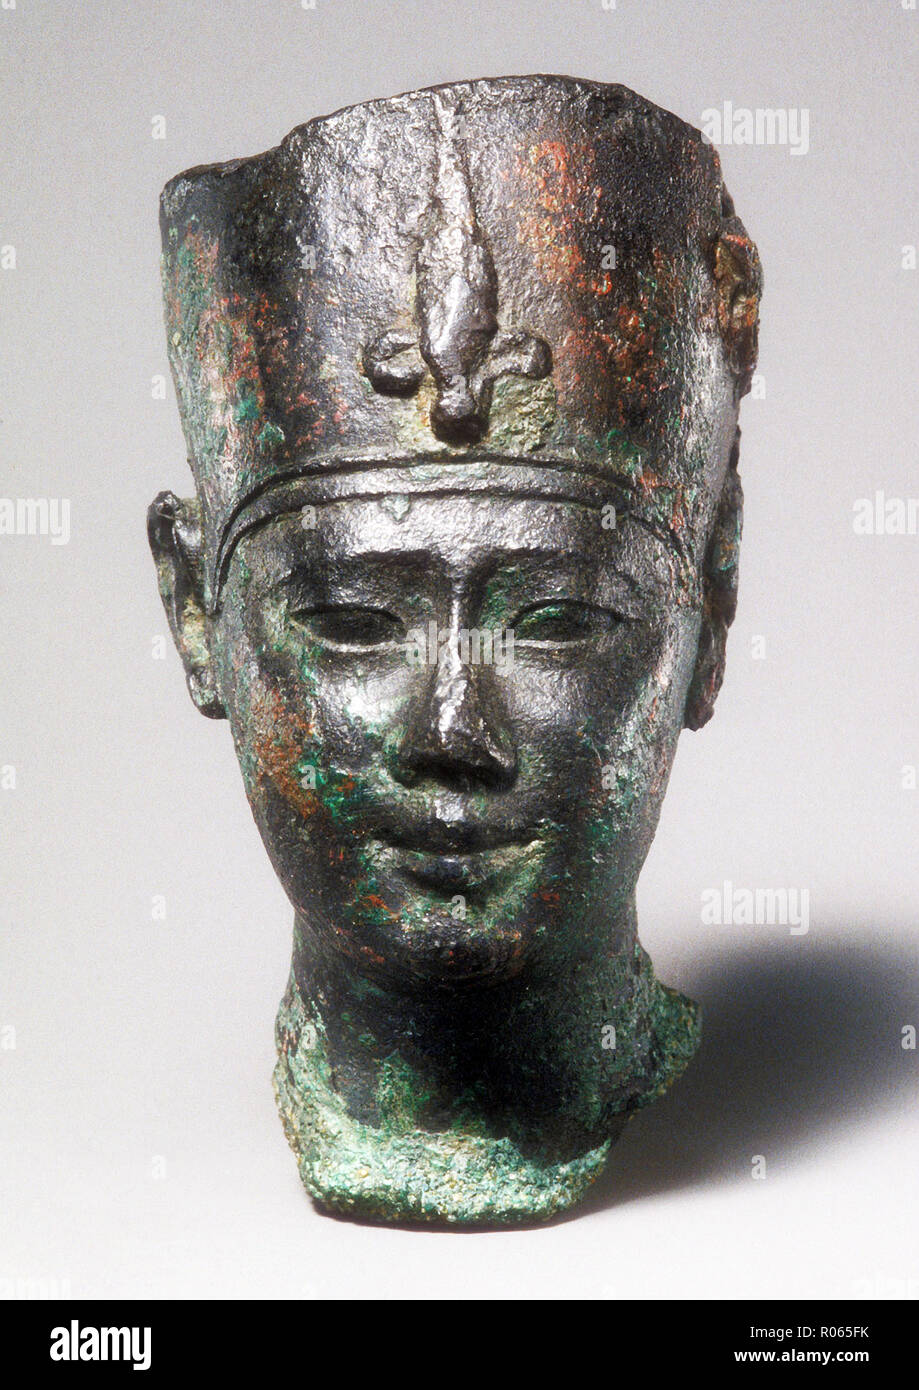 6377. Bronze bust of  Ptolemy  II. (or III.) dating c.  246-222 BC. Stock Photo